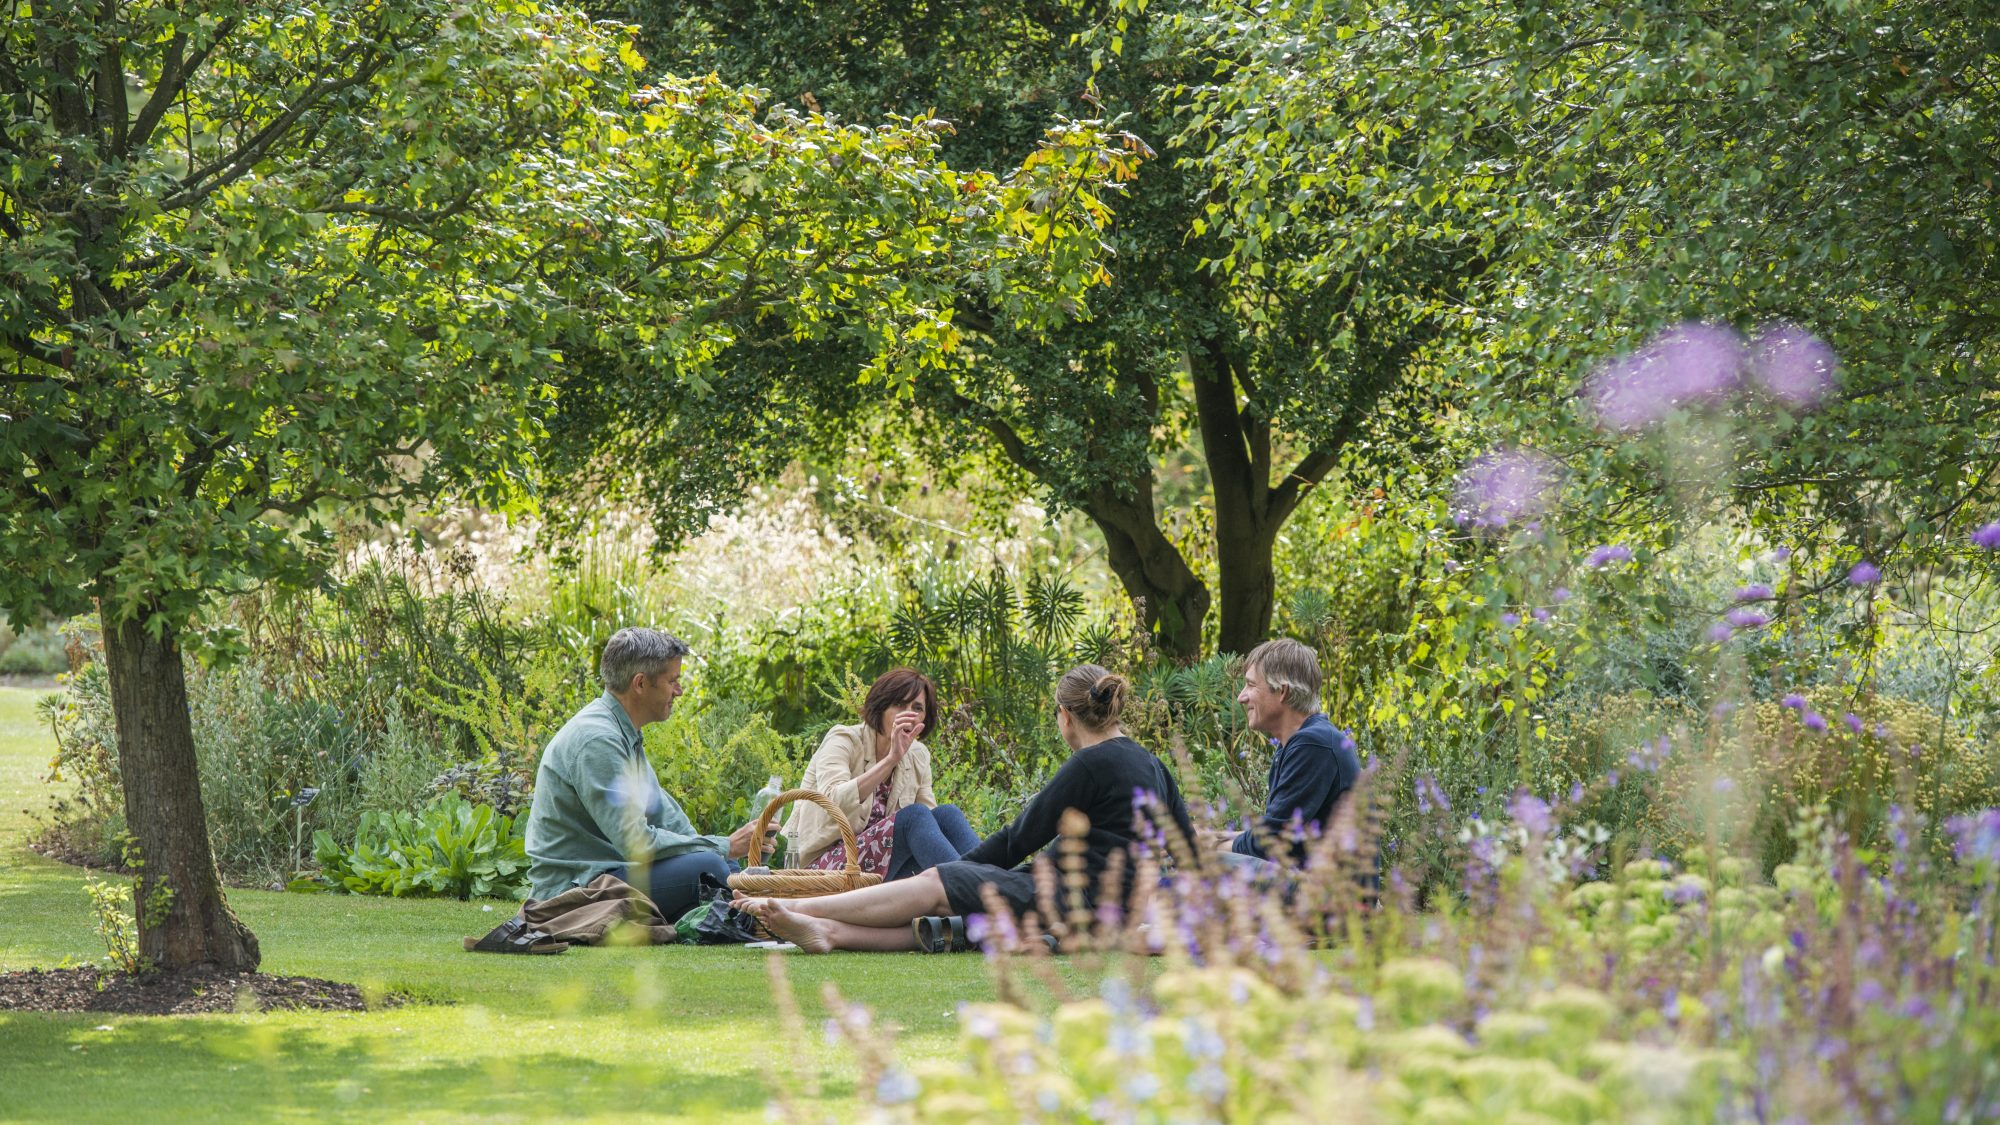 Visitors enjoying a picnic in the garden.